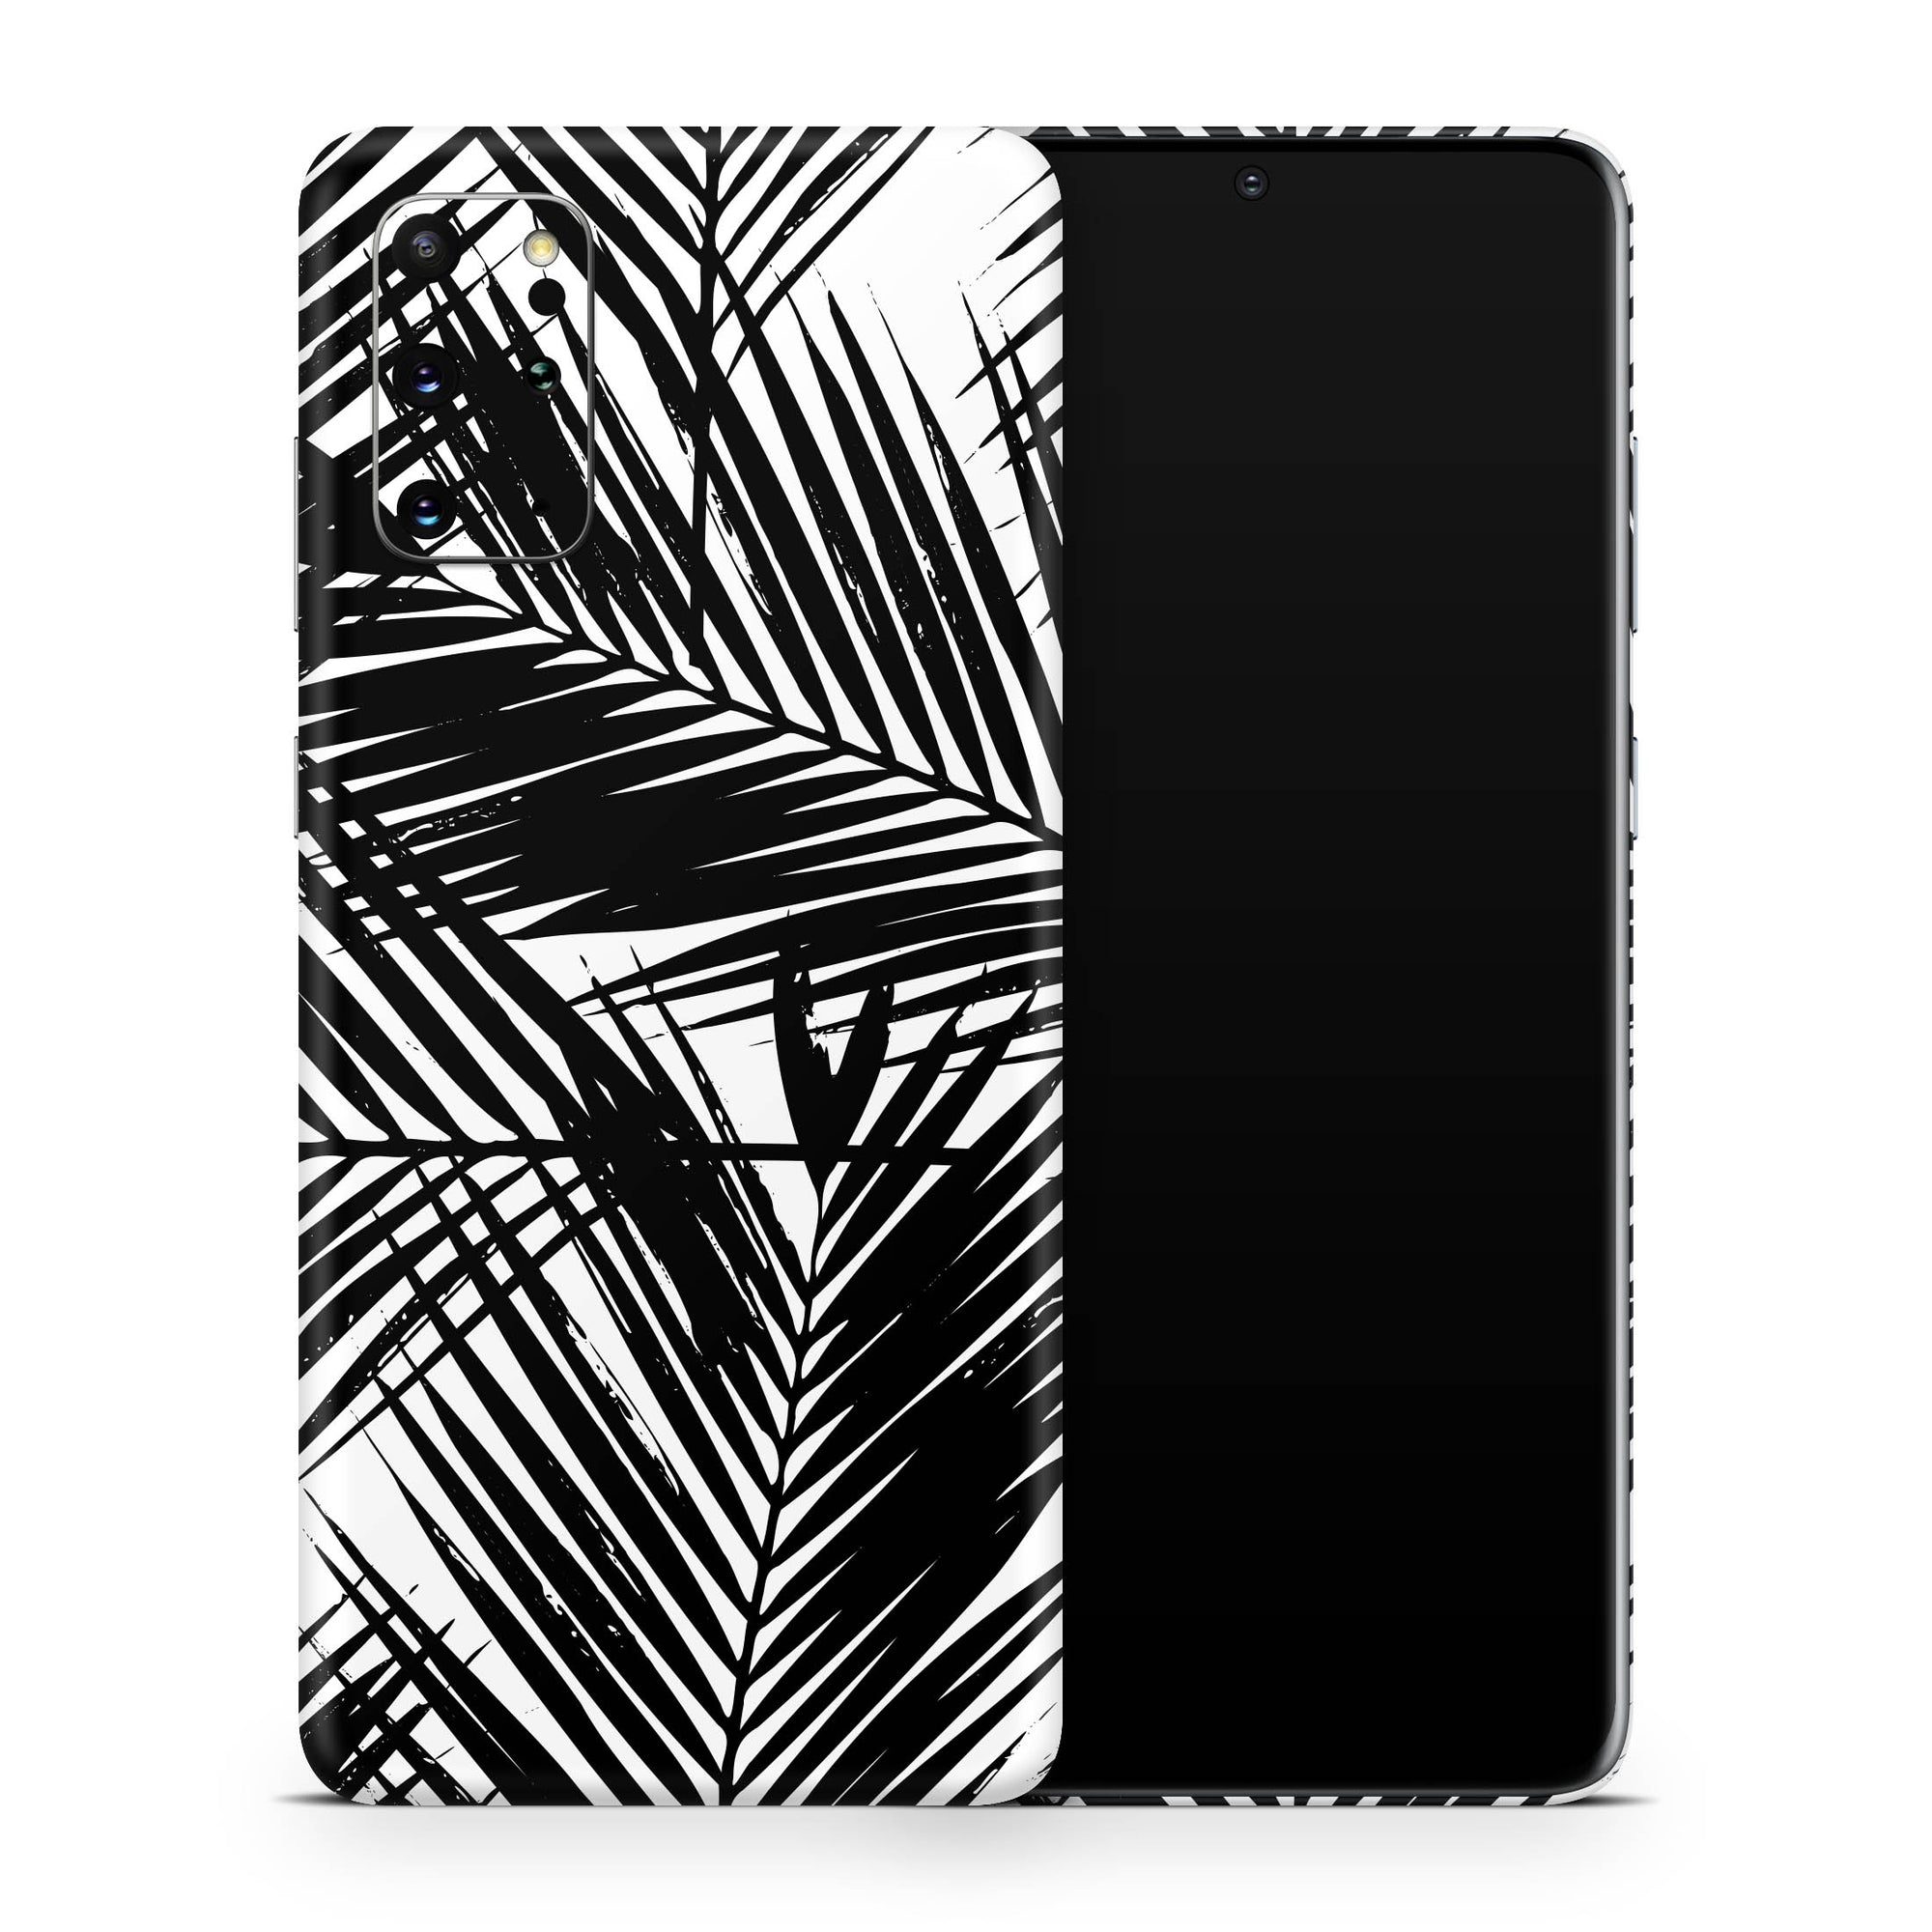 Palm Beach Galaxy S20 Ultra Skin + Case-Uniqfind